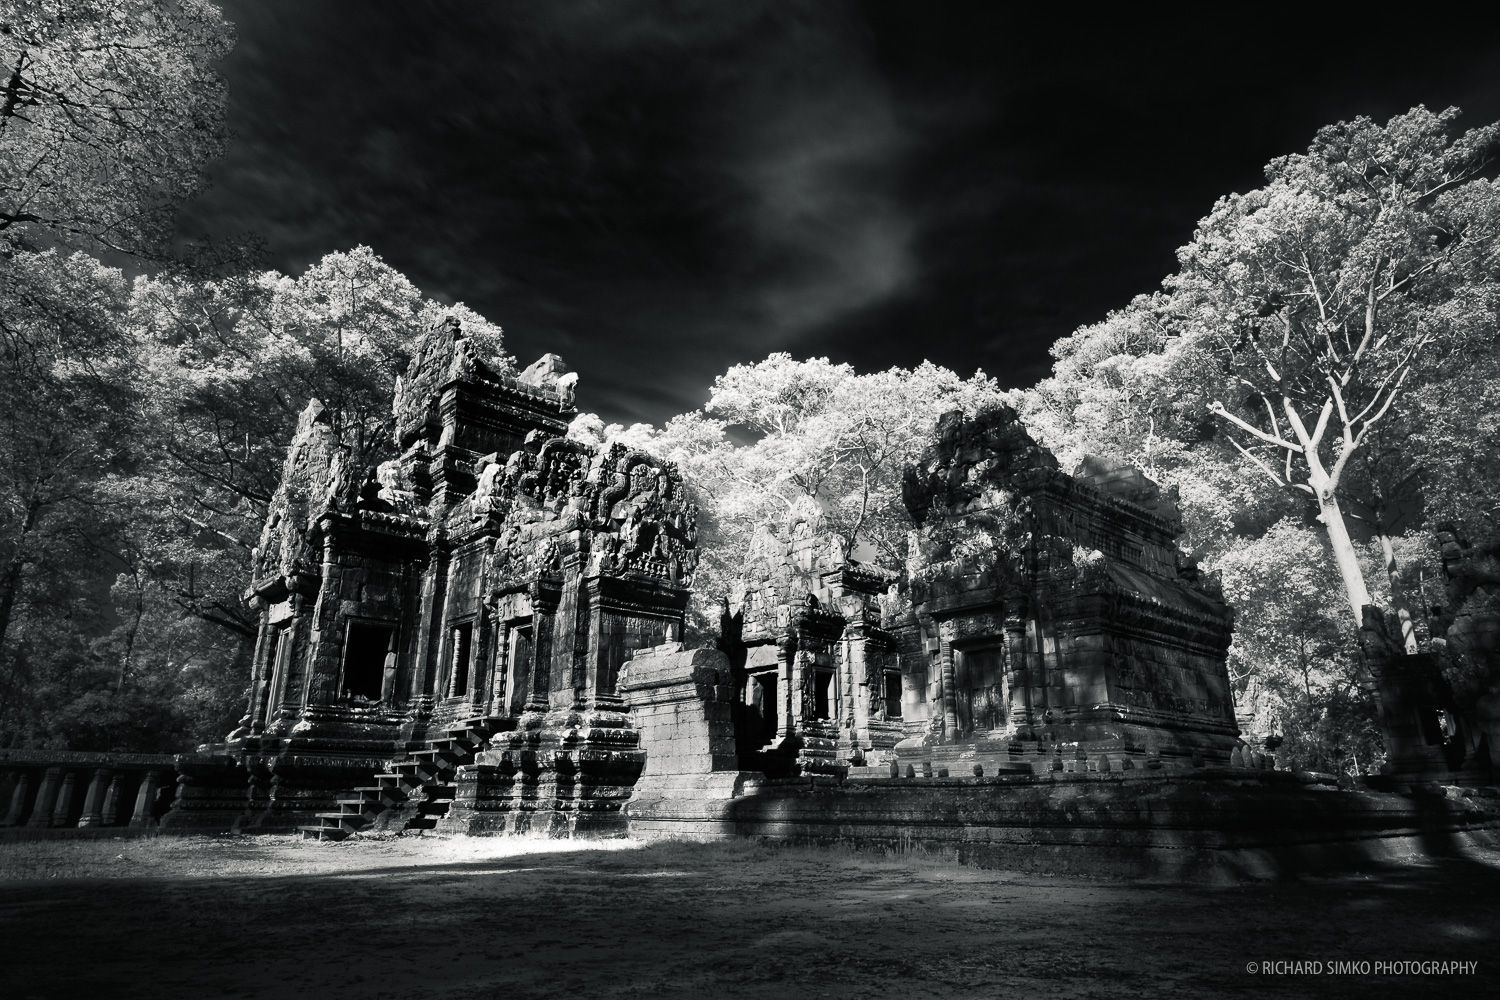 Cambodia is a hot and sunny country. Window of opportunity for photography during sunrise and sunset is very short. Most of the day the light is just too harsh for a nicely balanced photograph. However, that is the best condition to shoot infrared images. I was inspired by work of  John McDermott and his infrared photographs of Angkor temples. I gave it a go and I really like the result. Angkor temples look great in infrared spectrum.